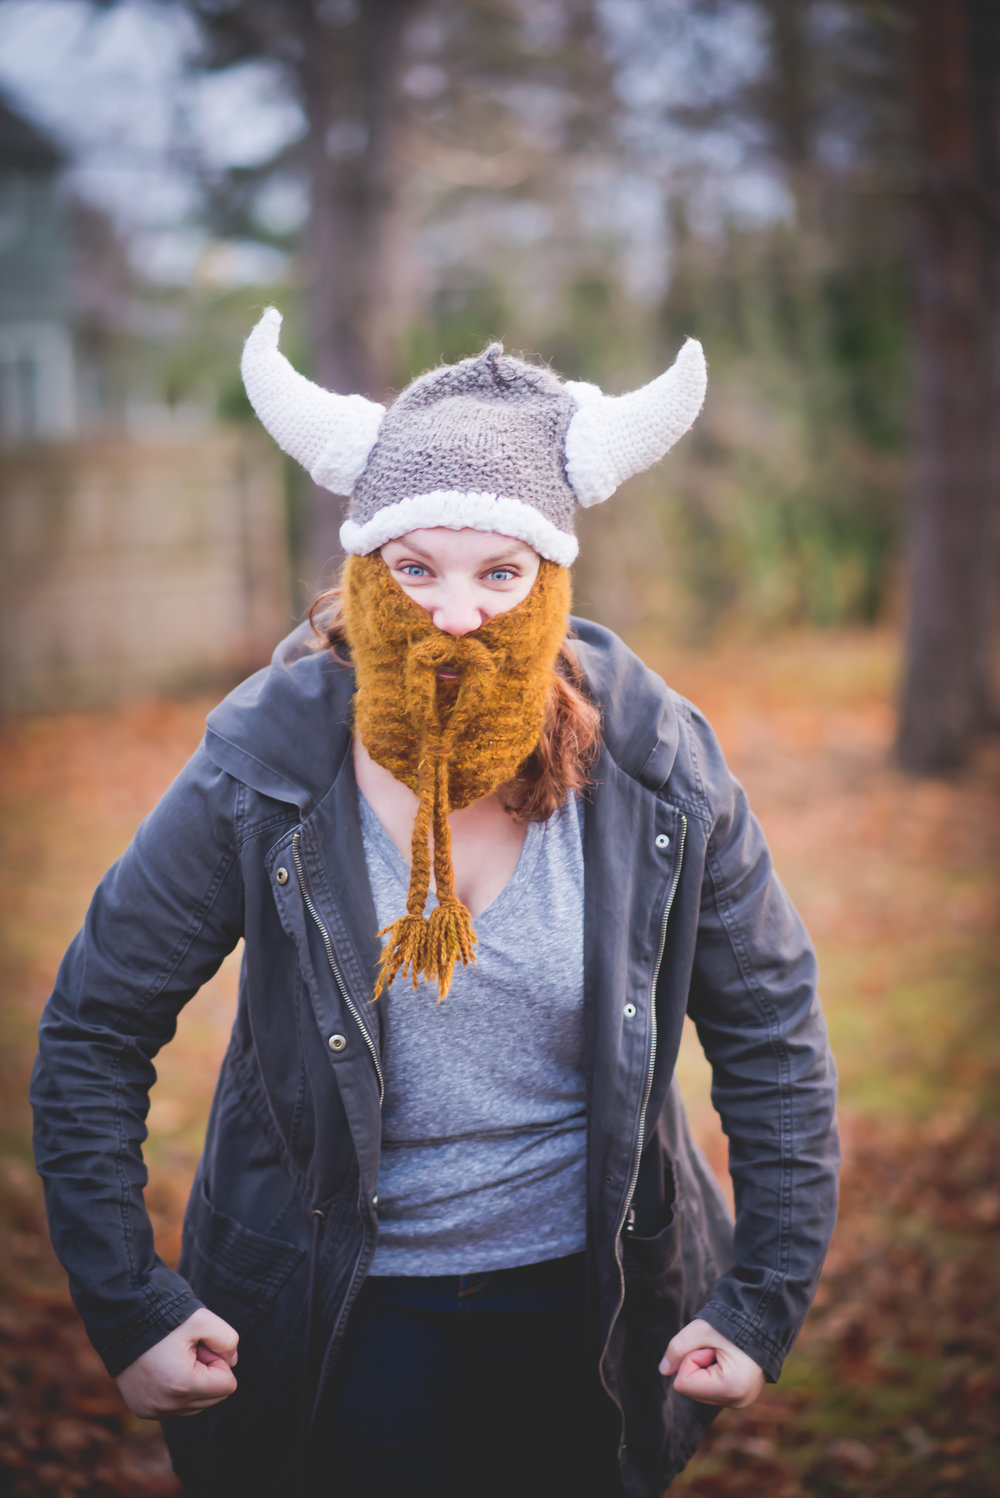 Sometimes at the end of a long day, putting on a warm hat with a beard and yelling in the woods can really soothe the soul.